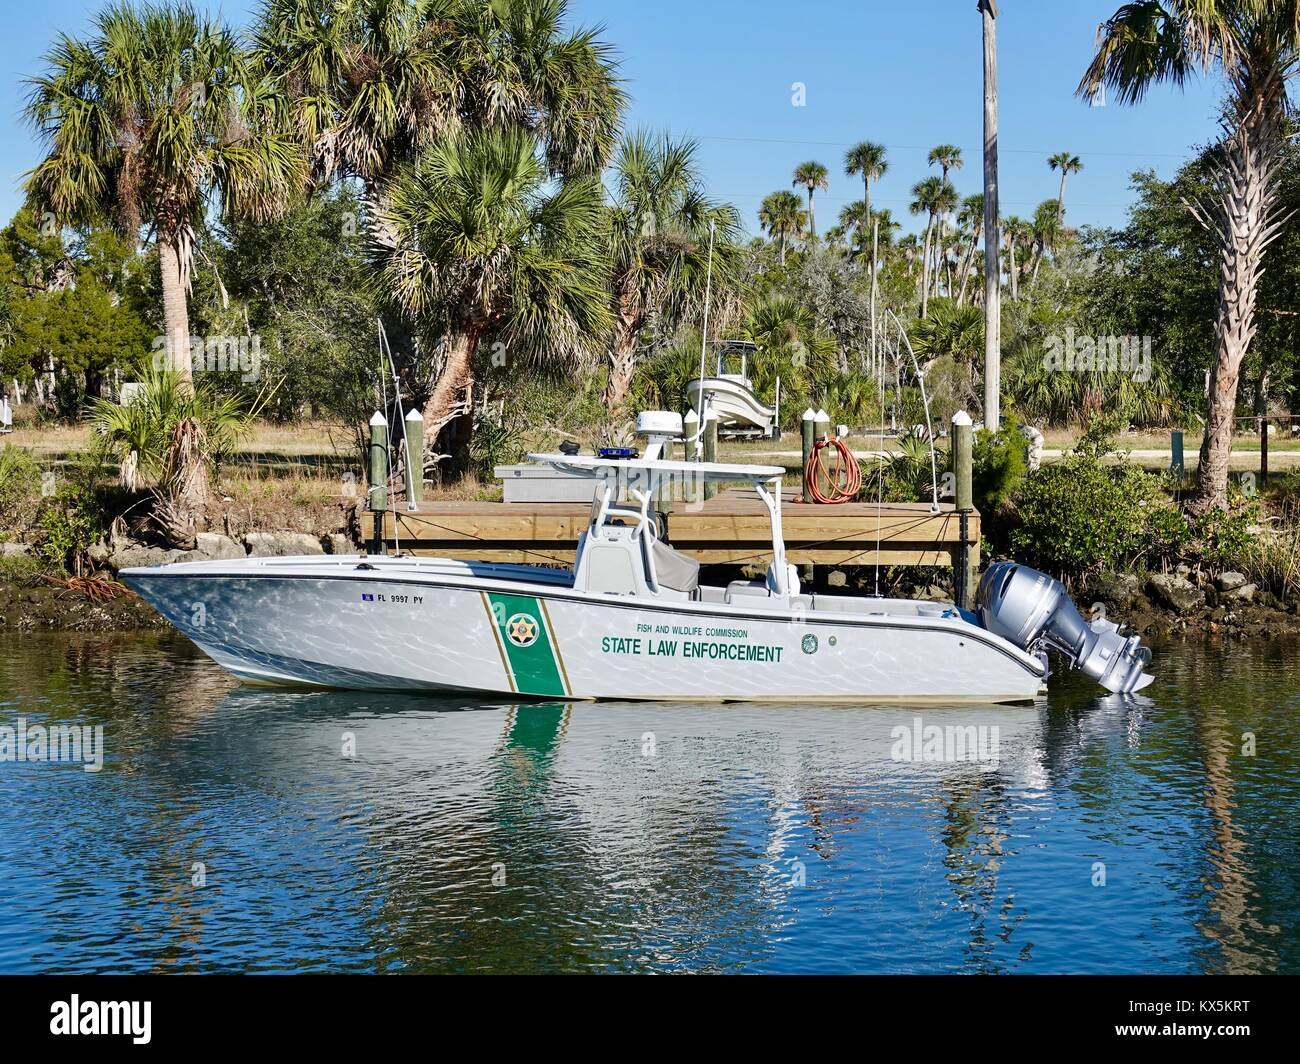 Florida Fish and Wildlife Commission State Law Enforcement boat tied to dock. Crystal River, Citrus County, Florida, Stock Photo